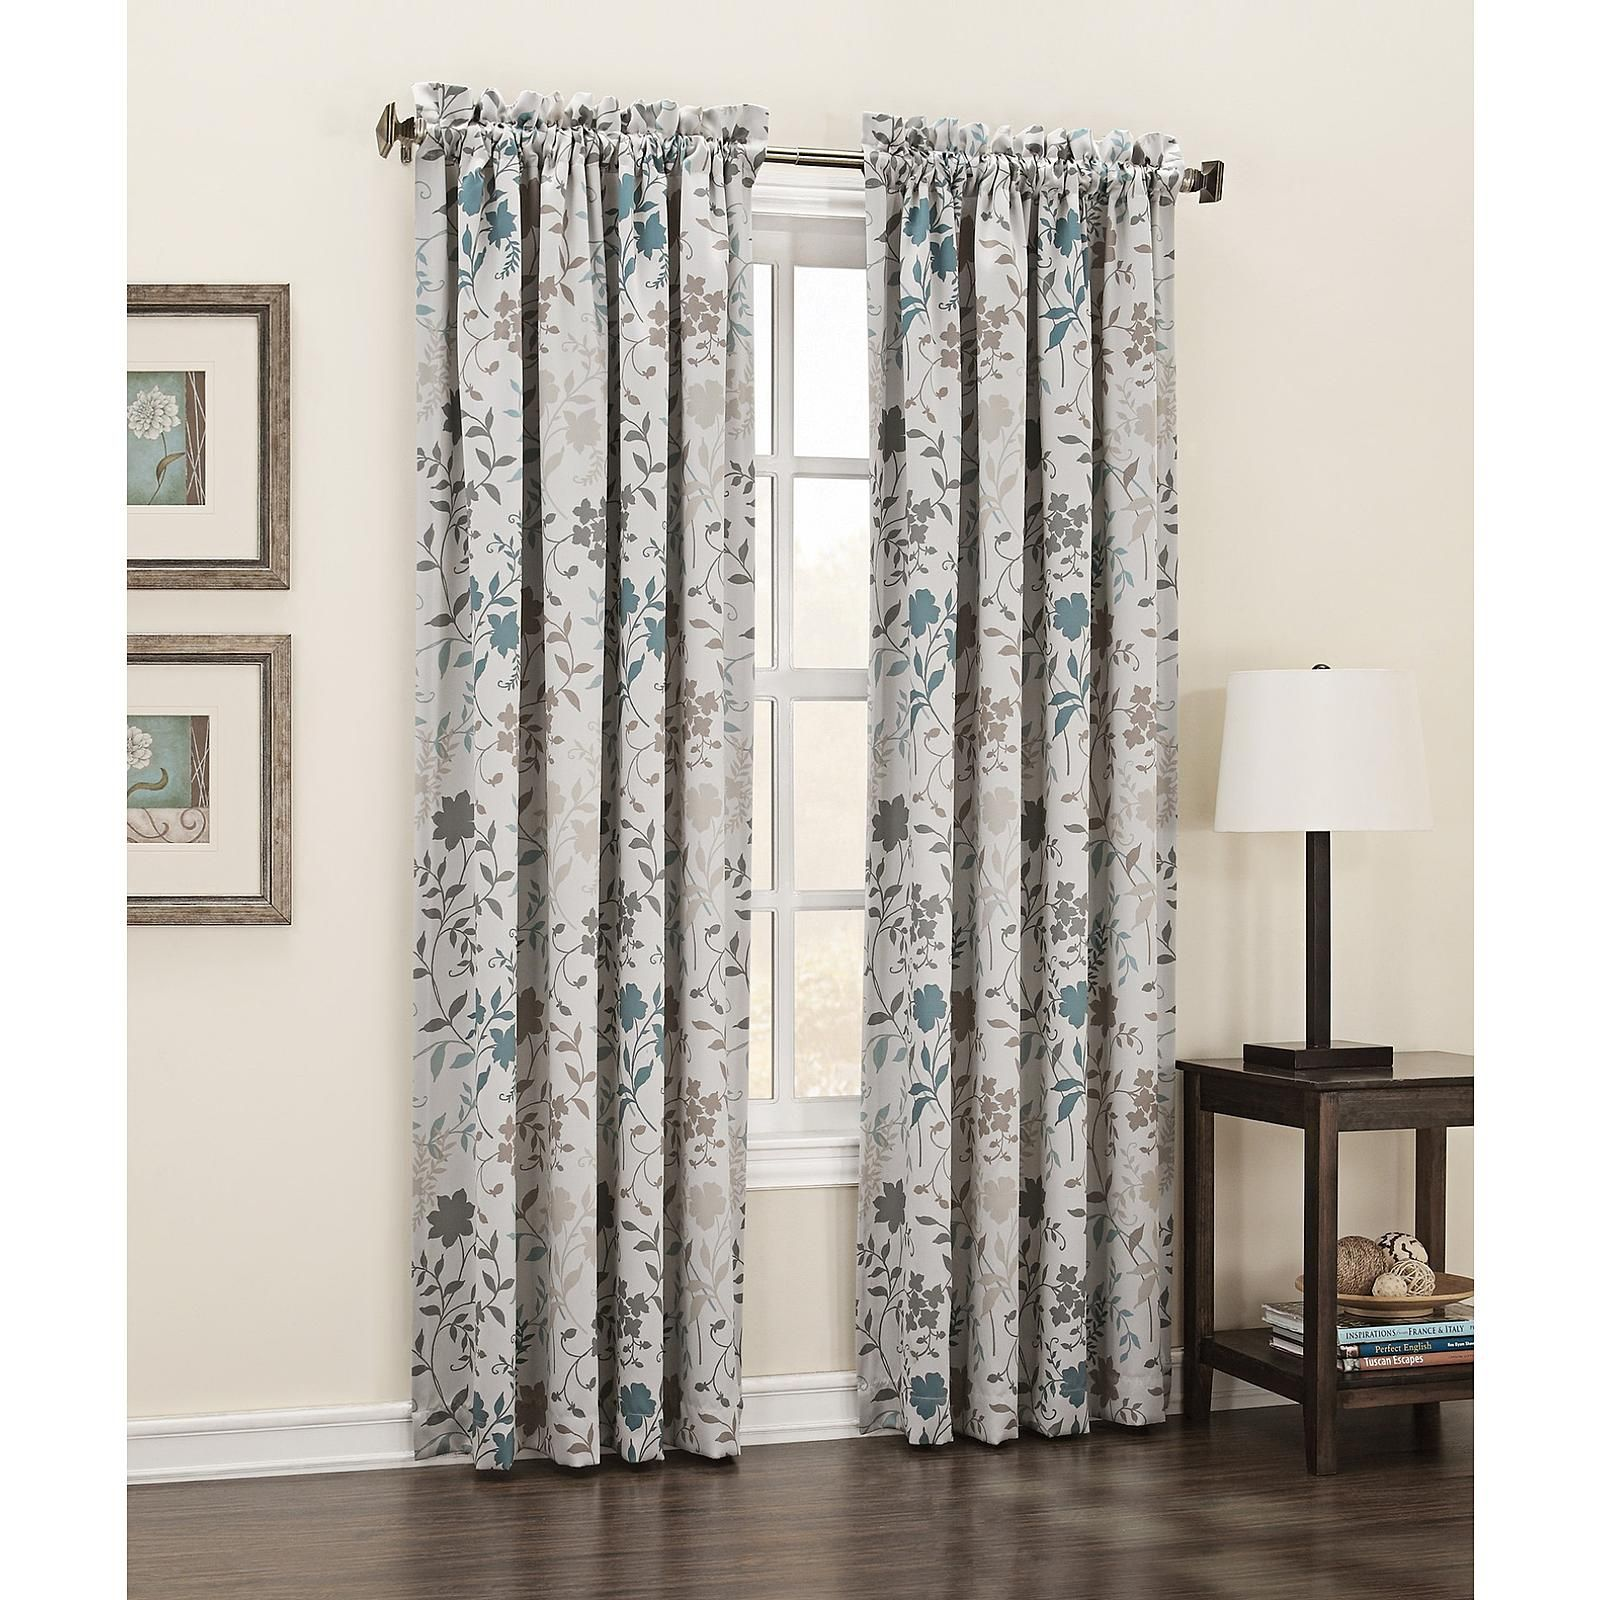 Kmart Com Floral Curtains Room Panel